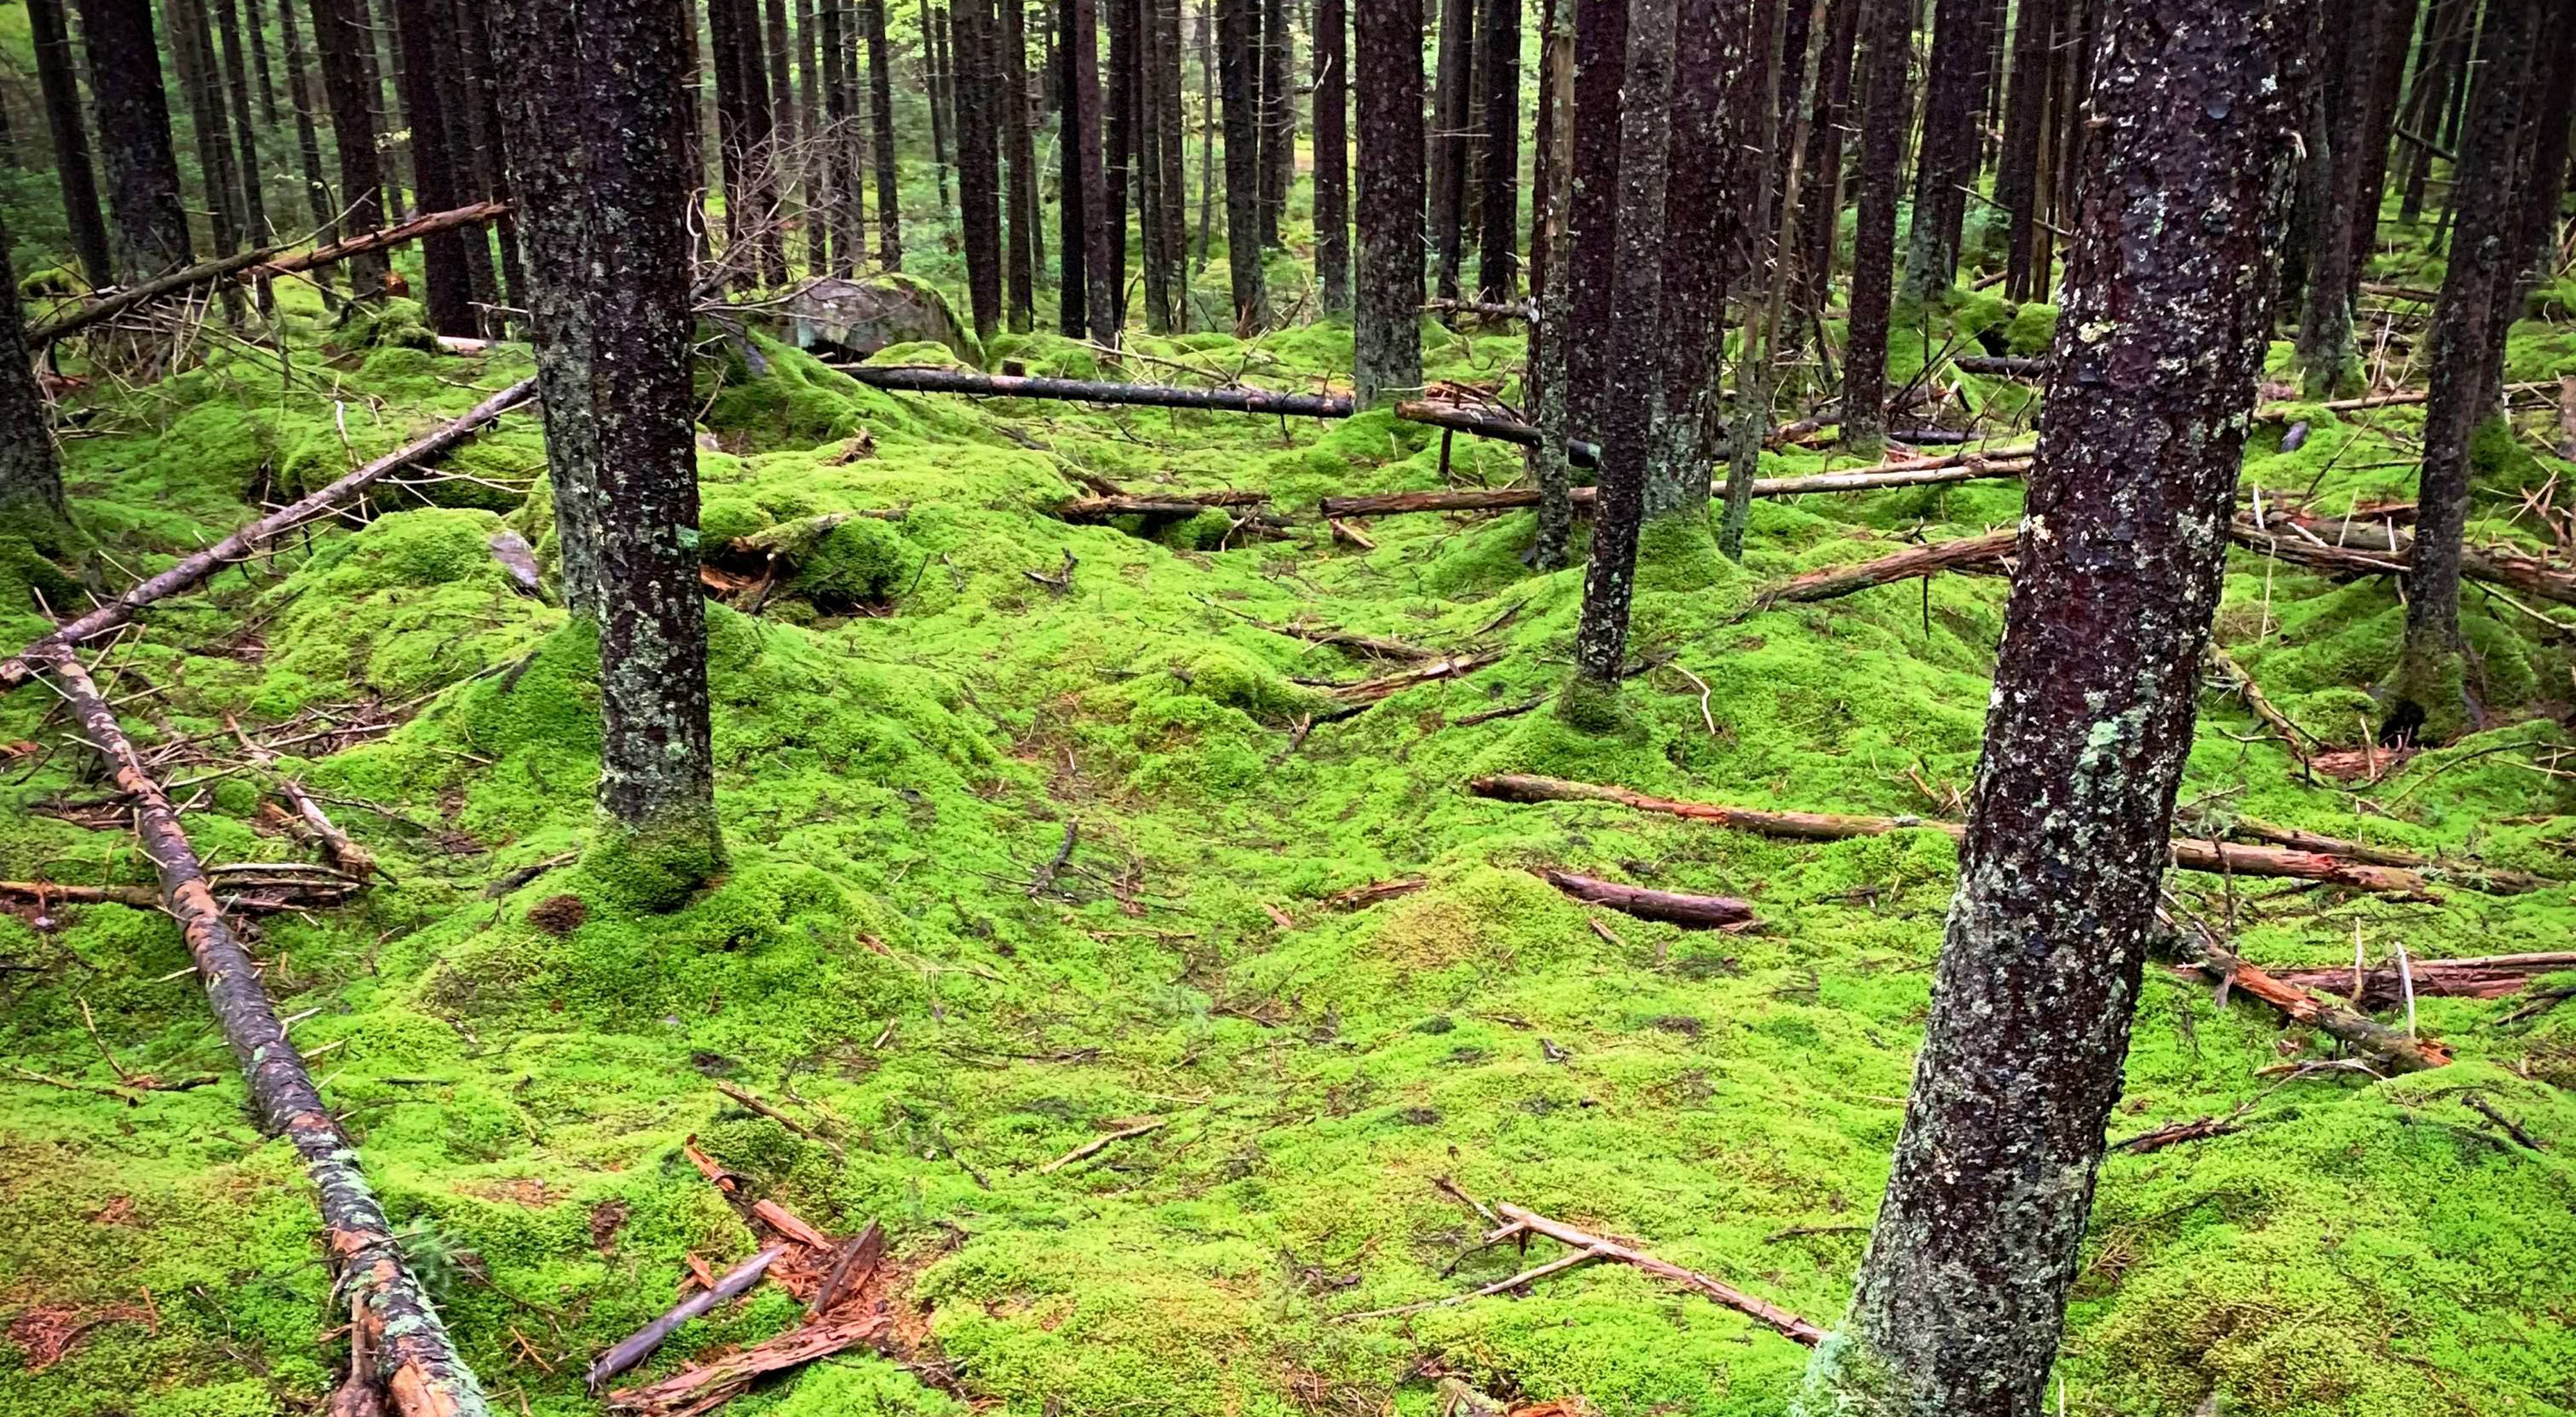 Thick, green moss covers a forest floor.